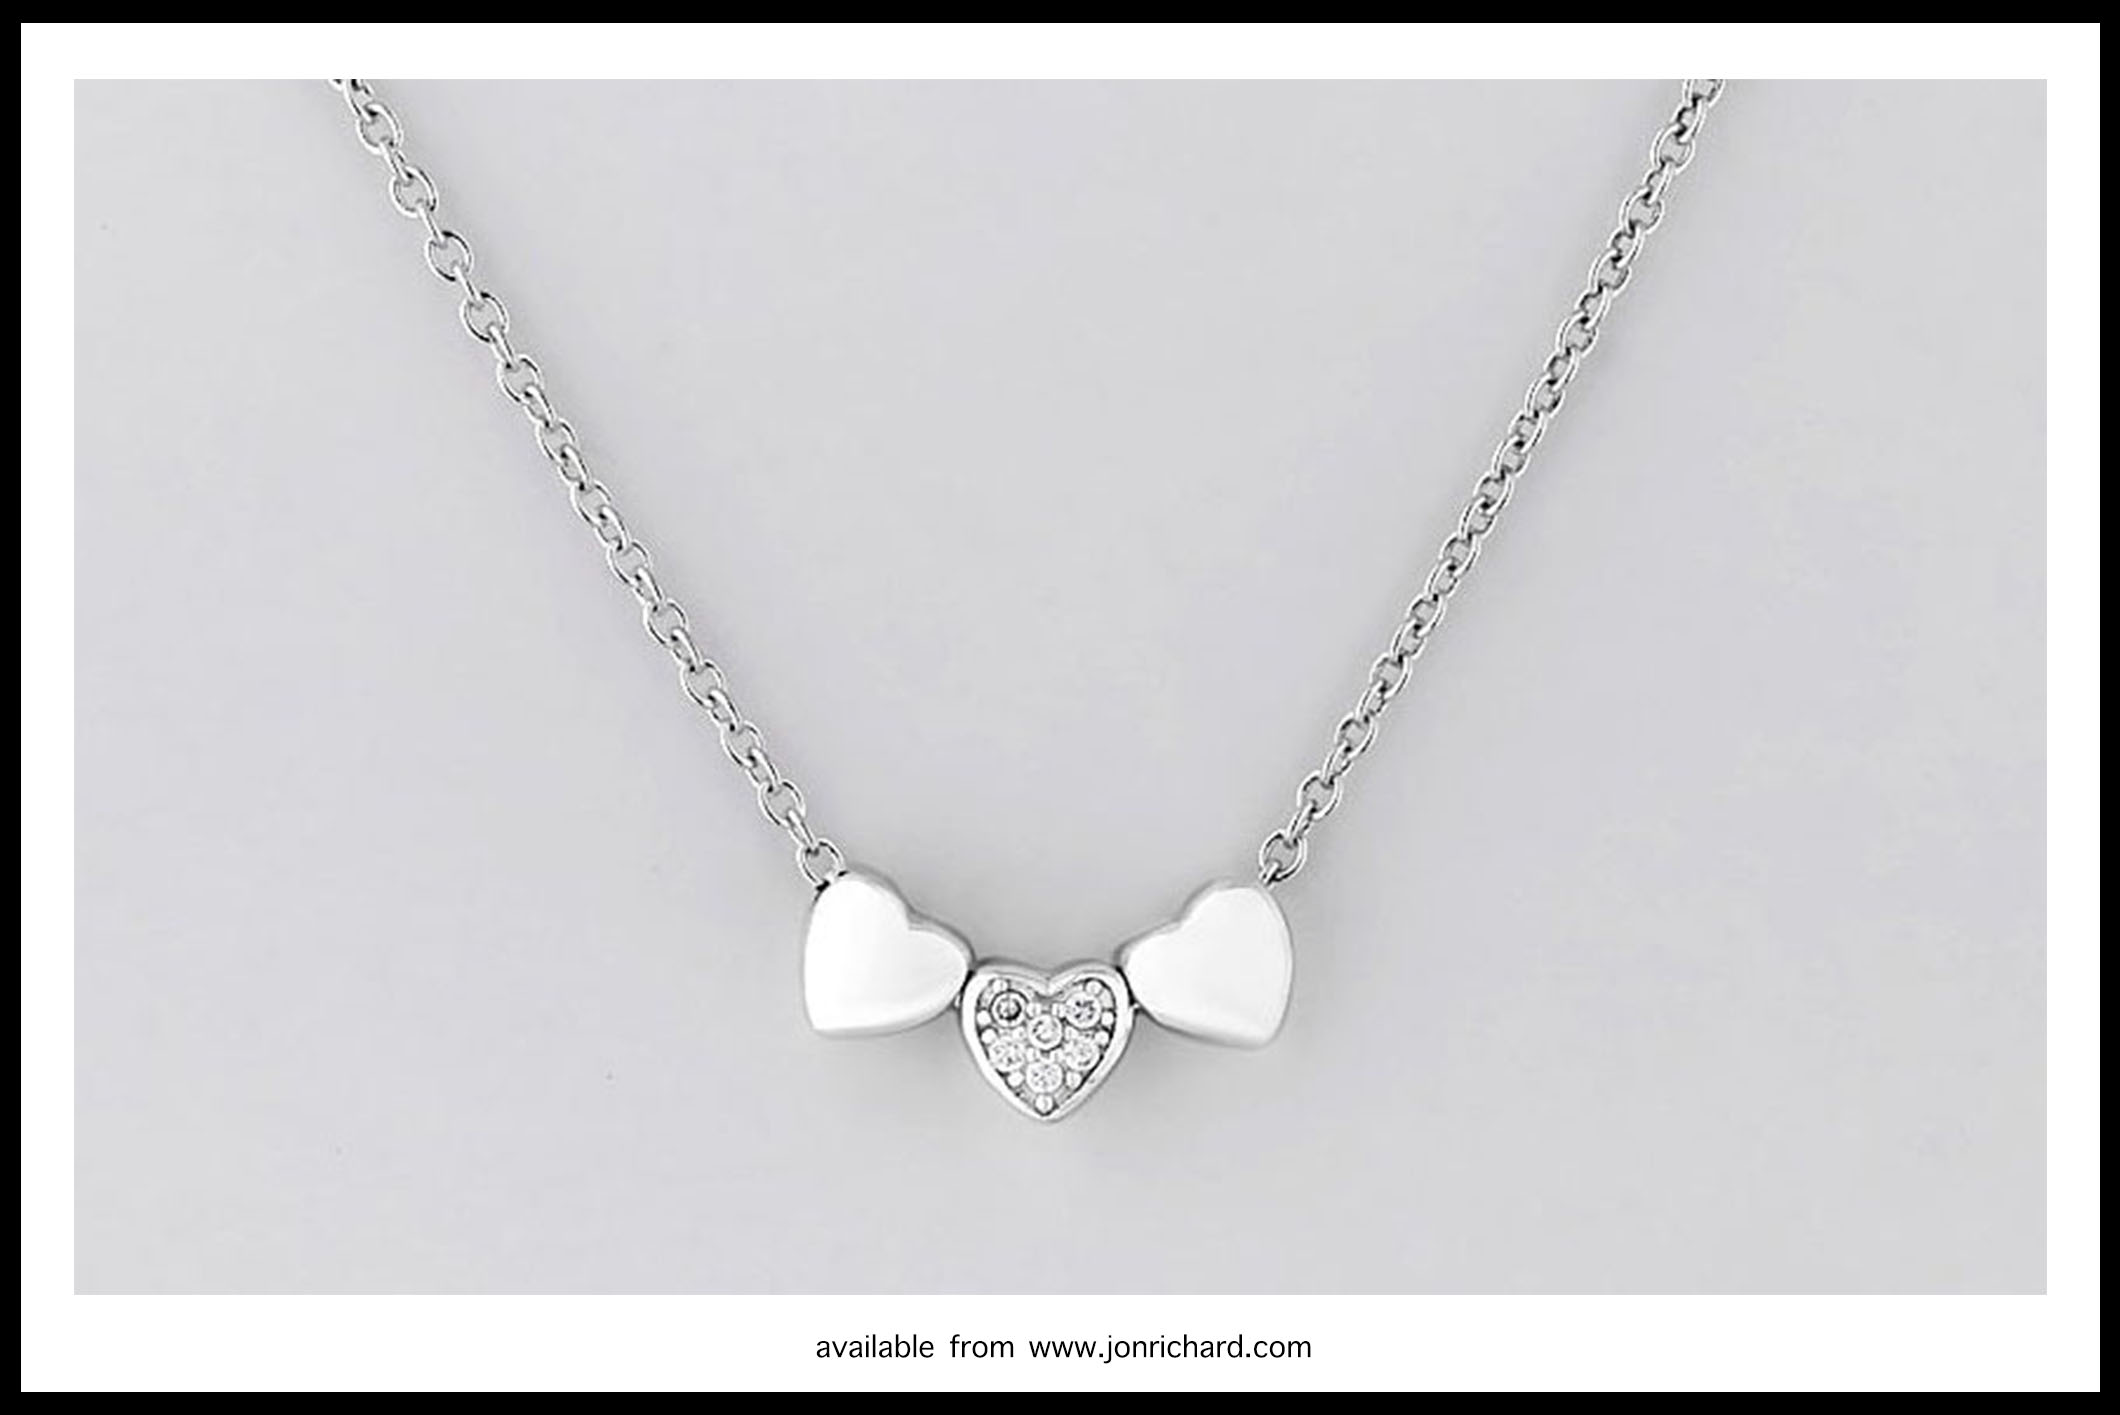 925 silver hearts necklace from jonrichardcomjpg